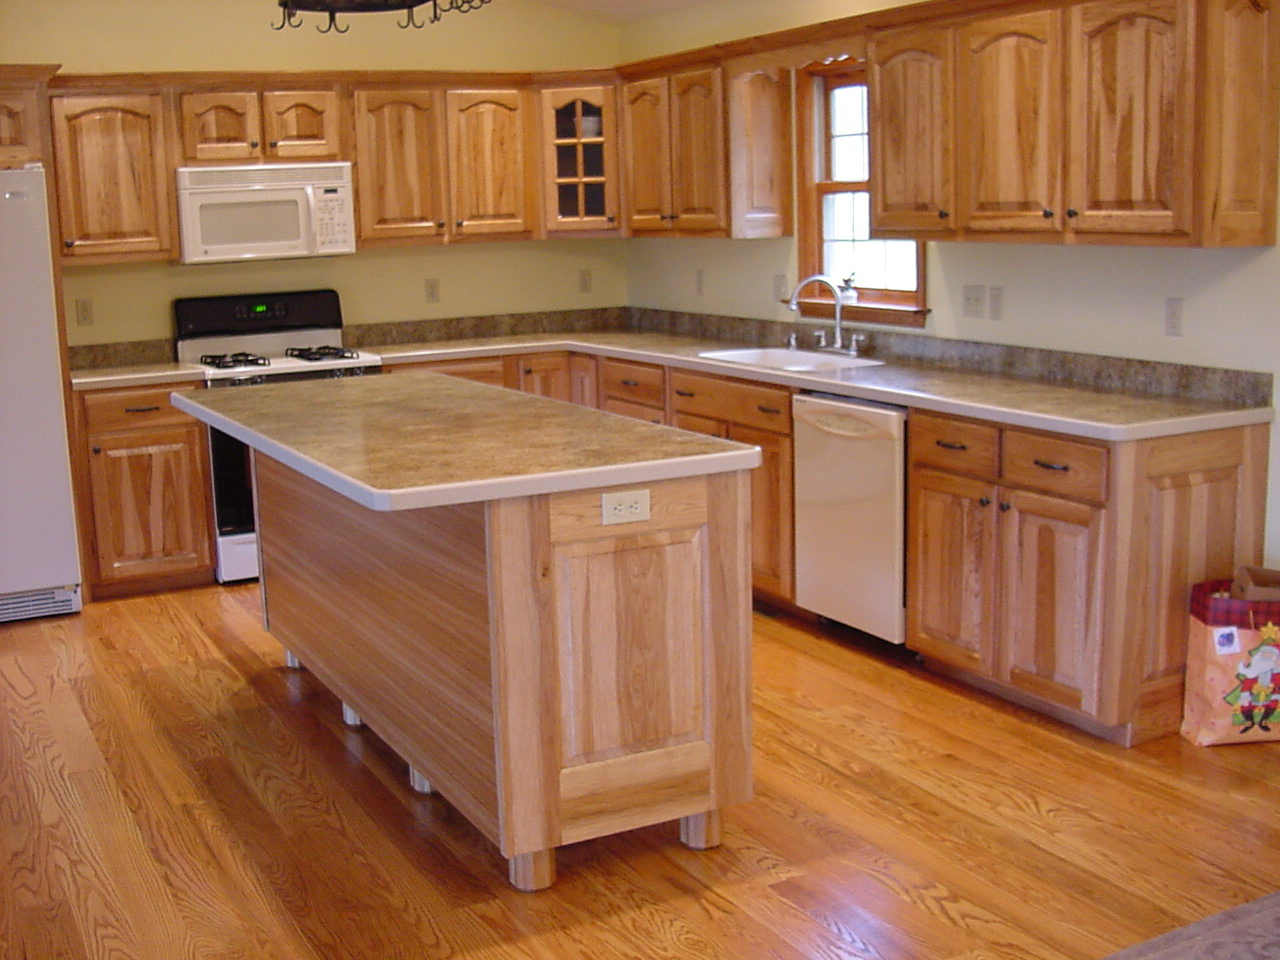 Http Houseconstructionindia Blogspot Com Es 2010 04 Kitchens Countertop Materials Html